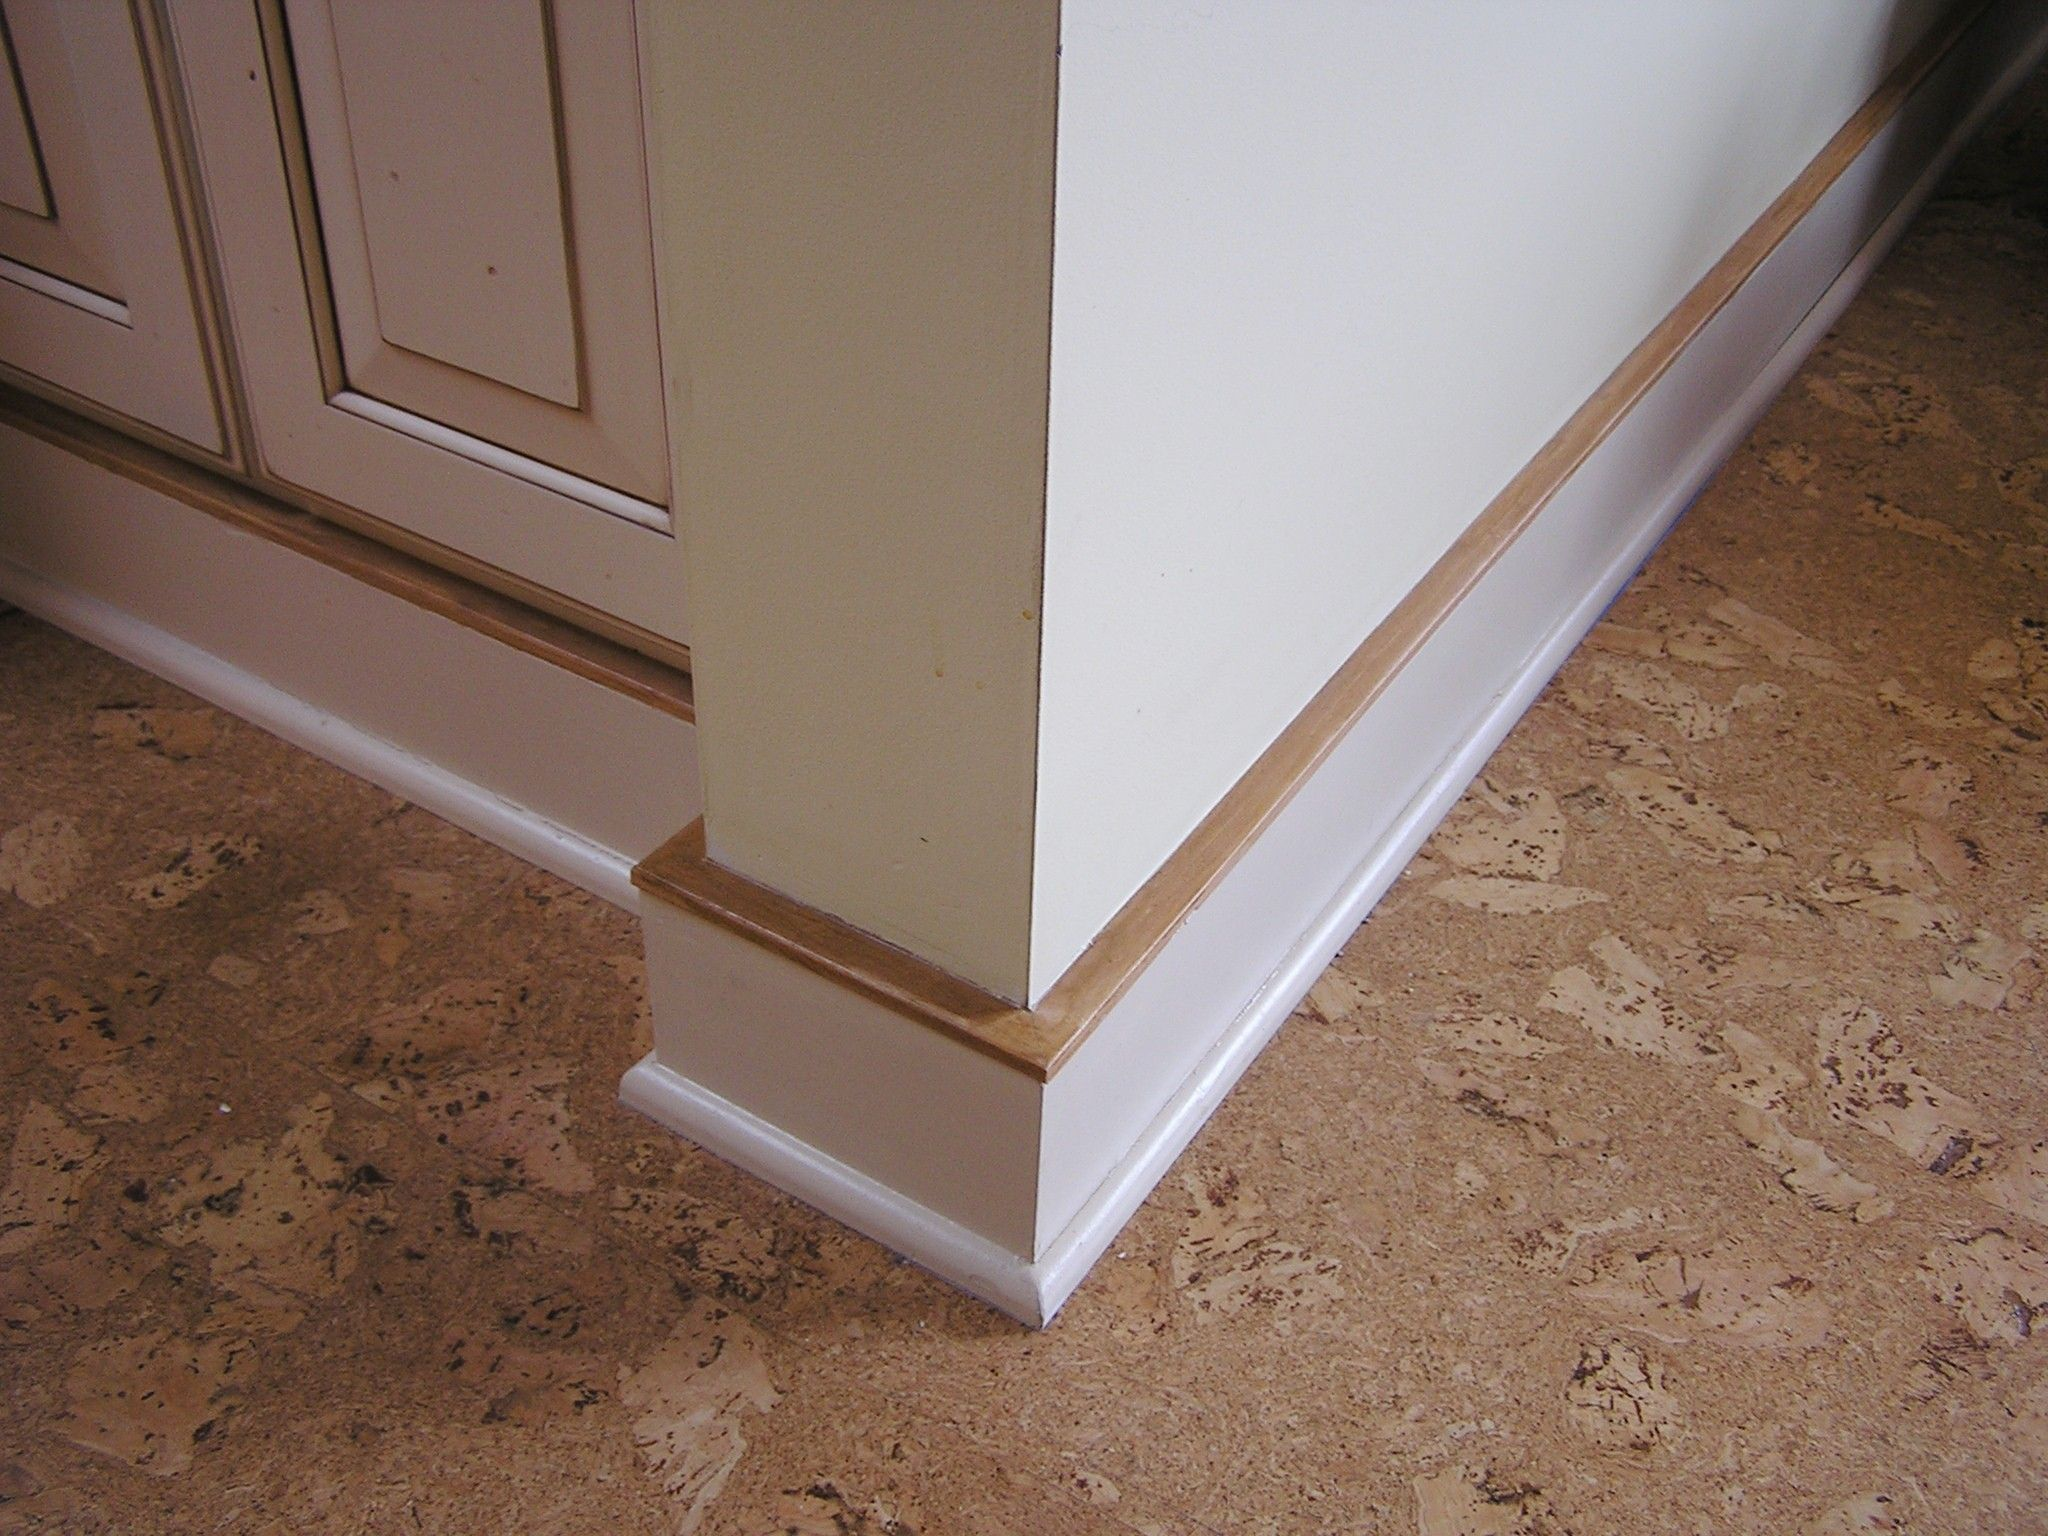 Take a look at baseboard and trim details mdf baseboard and hardwood base shoe were